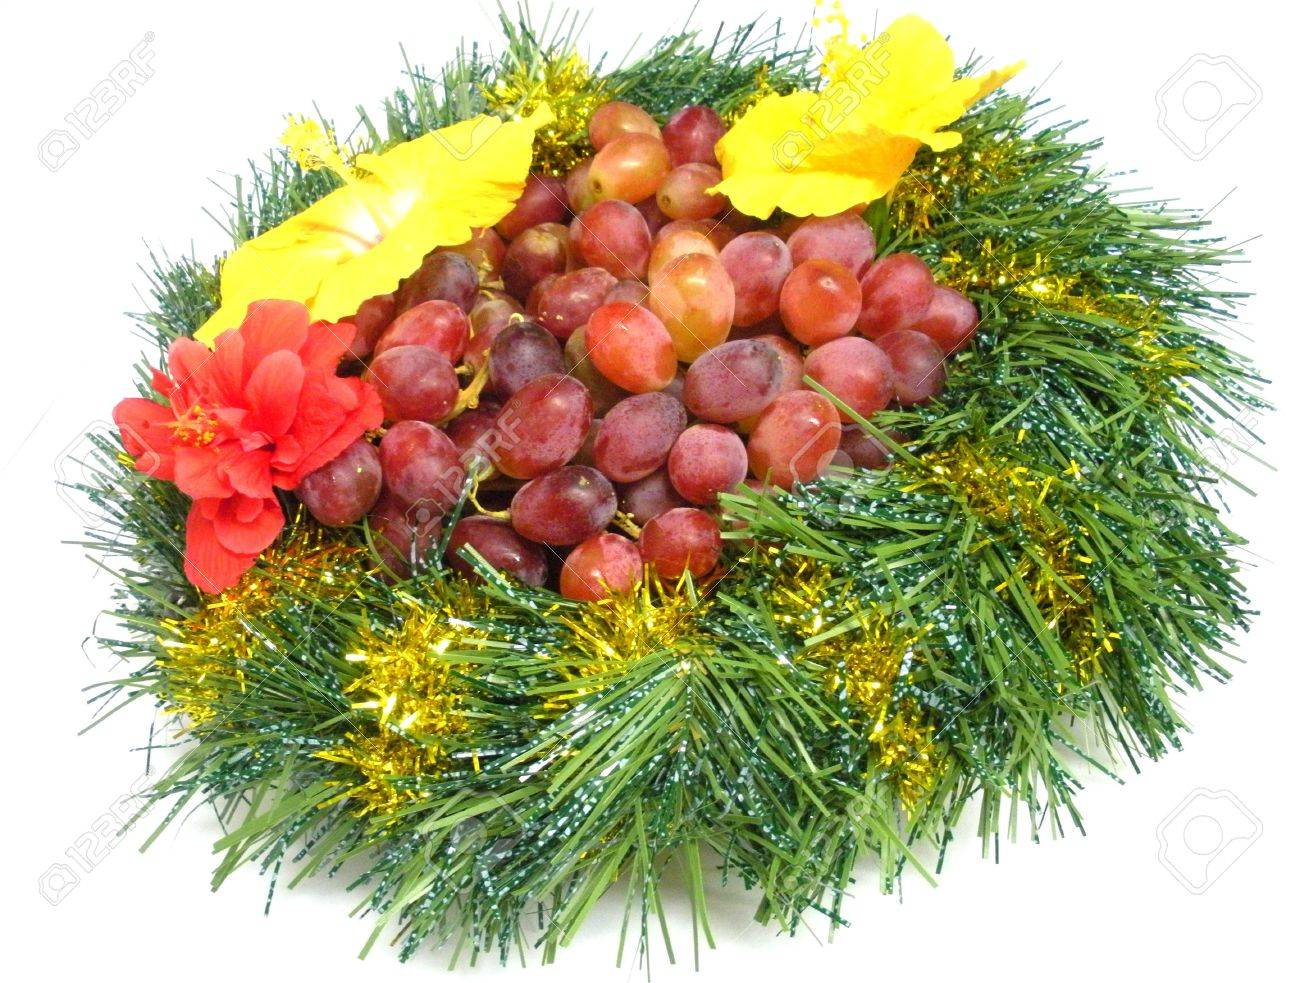 Wreath for Christmas with grapes and hibiscus flowers. Stock Photo - 5969937